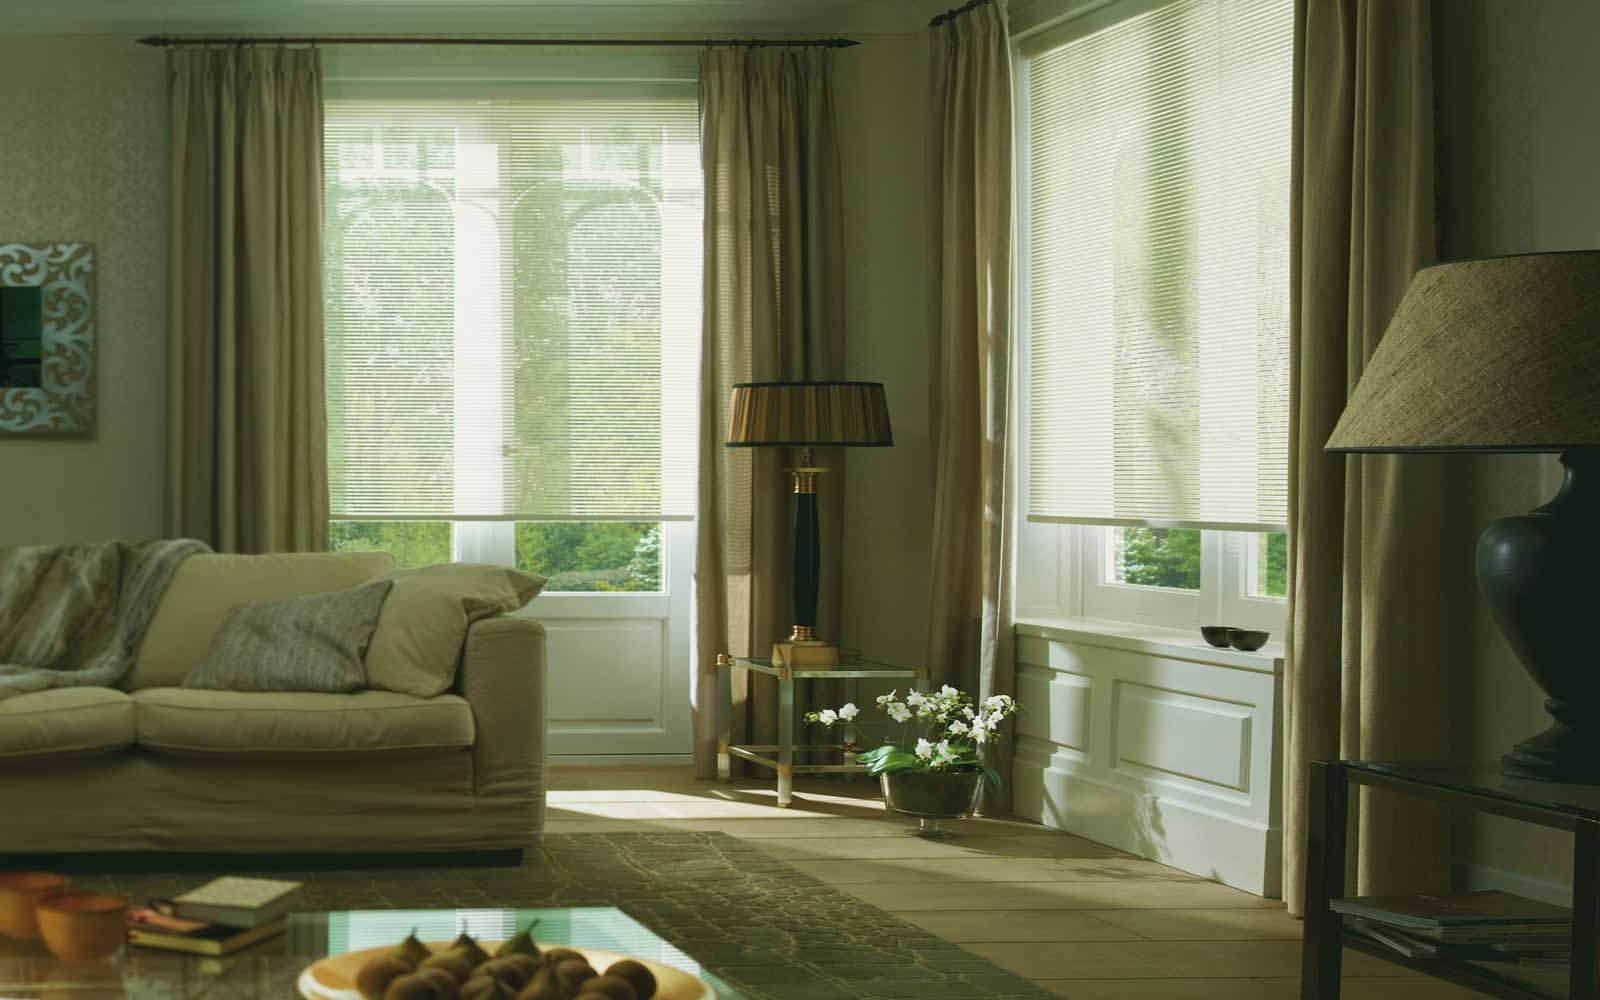 Roman Blinds Surrey Blinds Shutters With Voile Roman Blinds (Image 10 of 15)